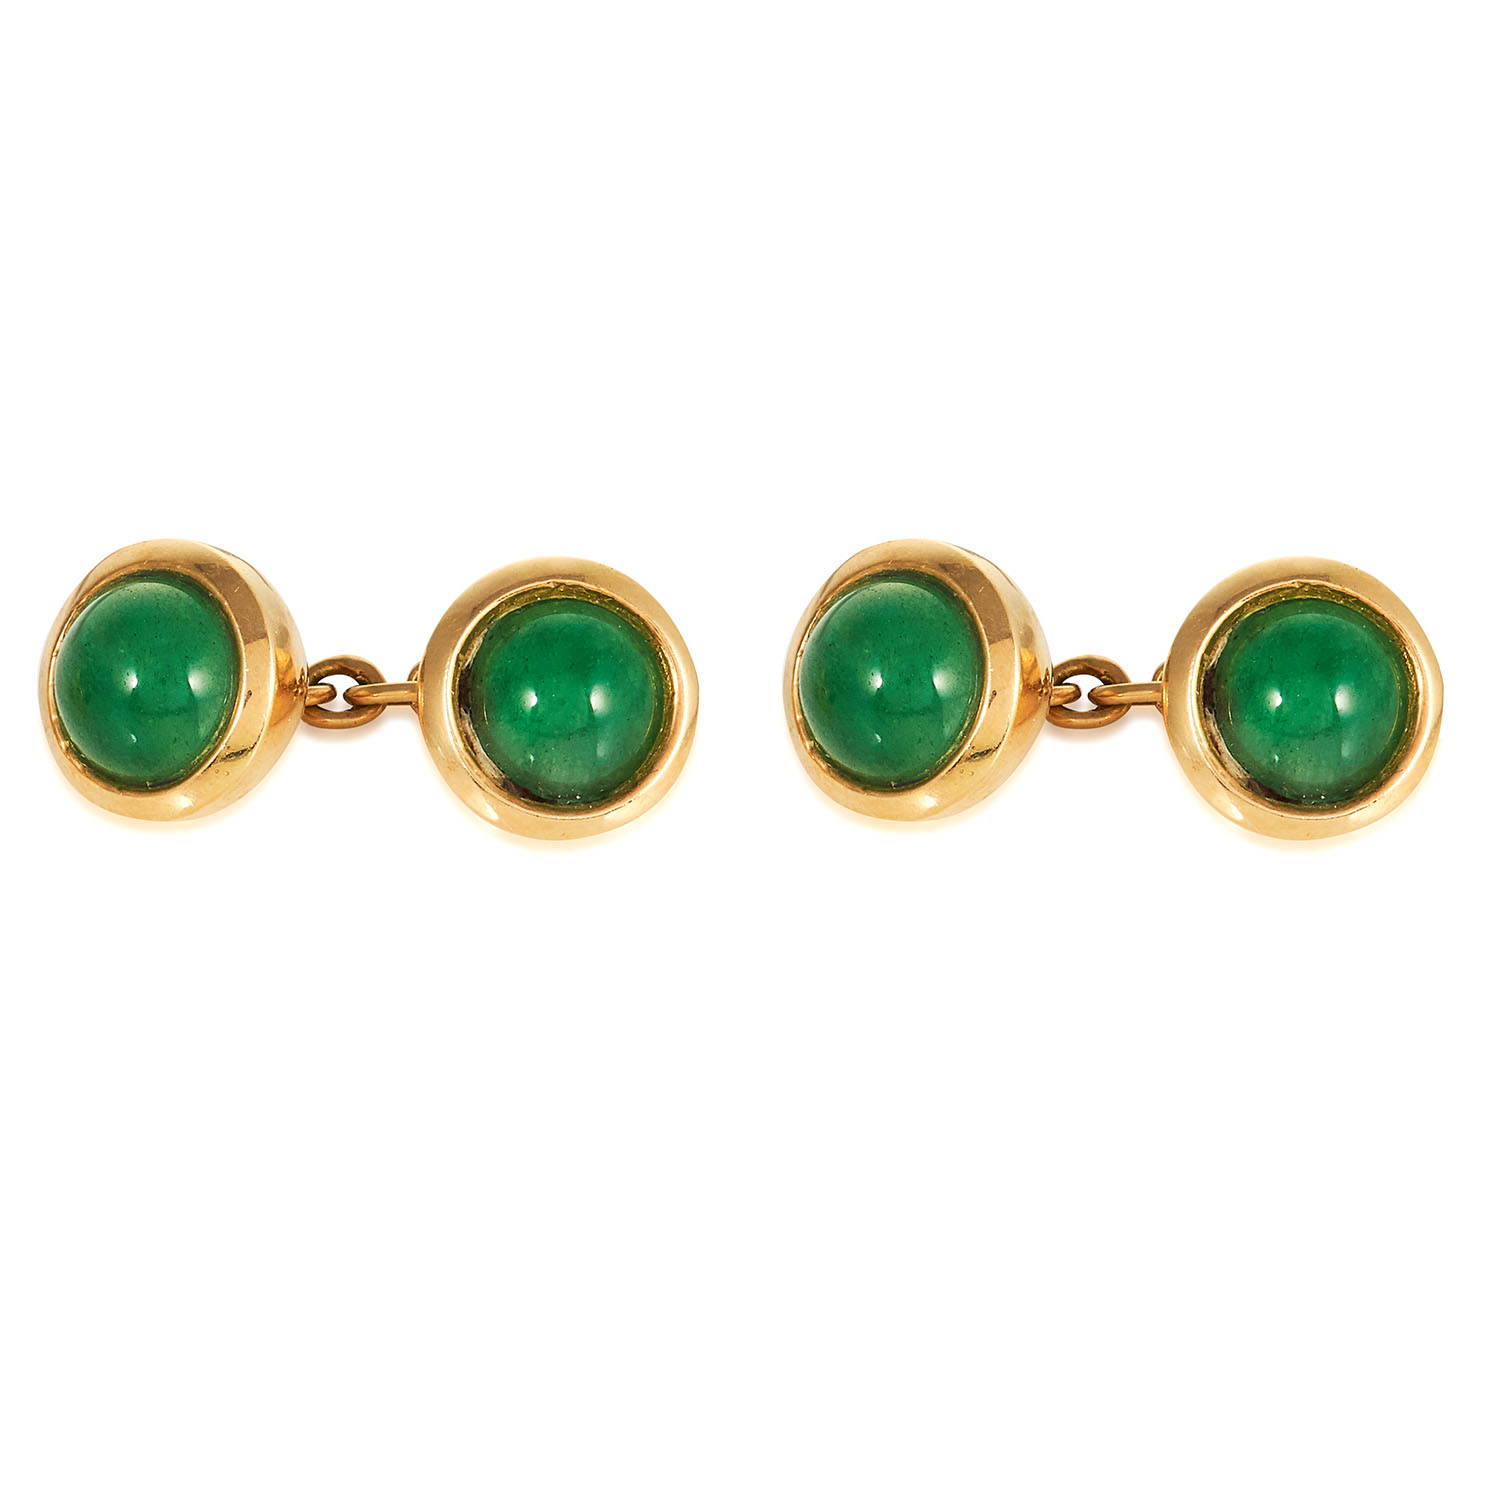 A PAIR OF CHRYSOPRASE CUFFLINKS in high carat yellow gold, each jewelled with two cabochon